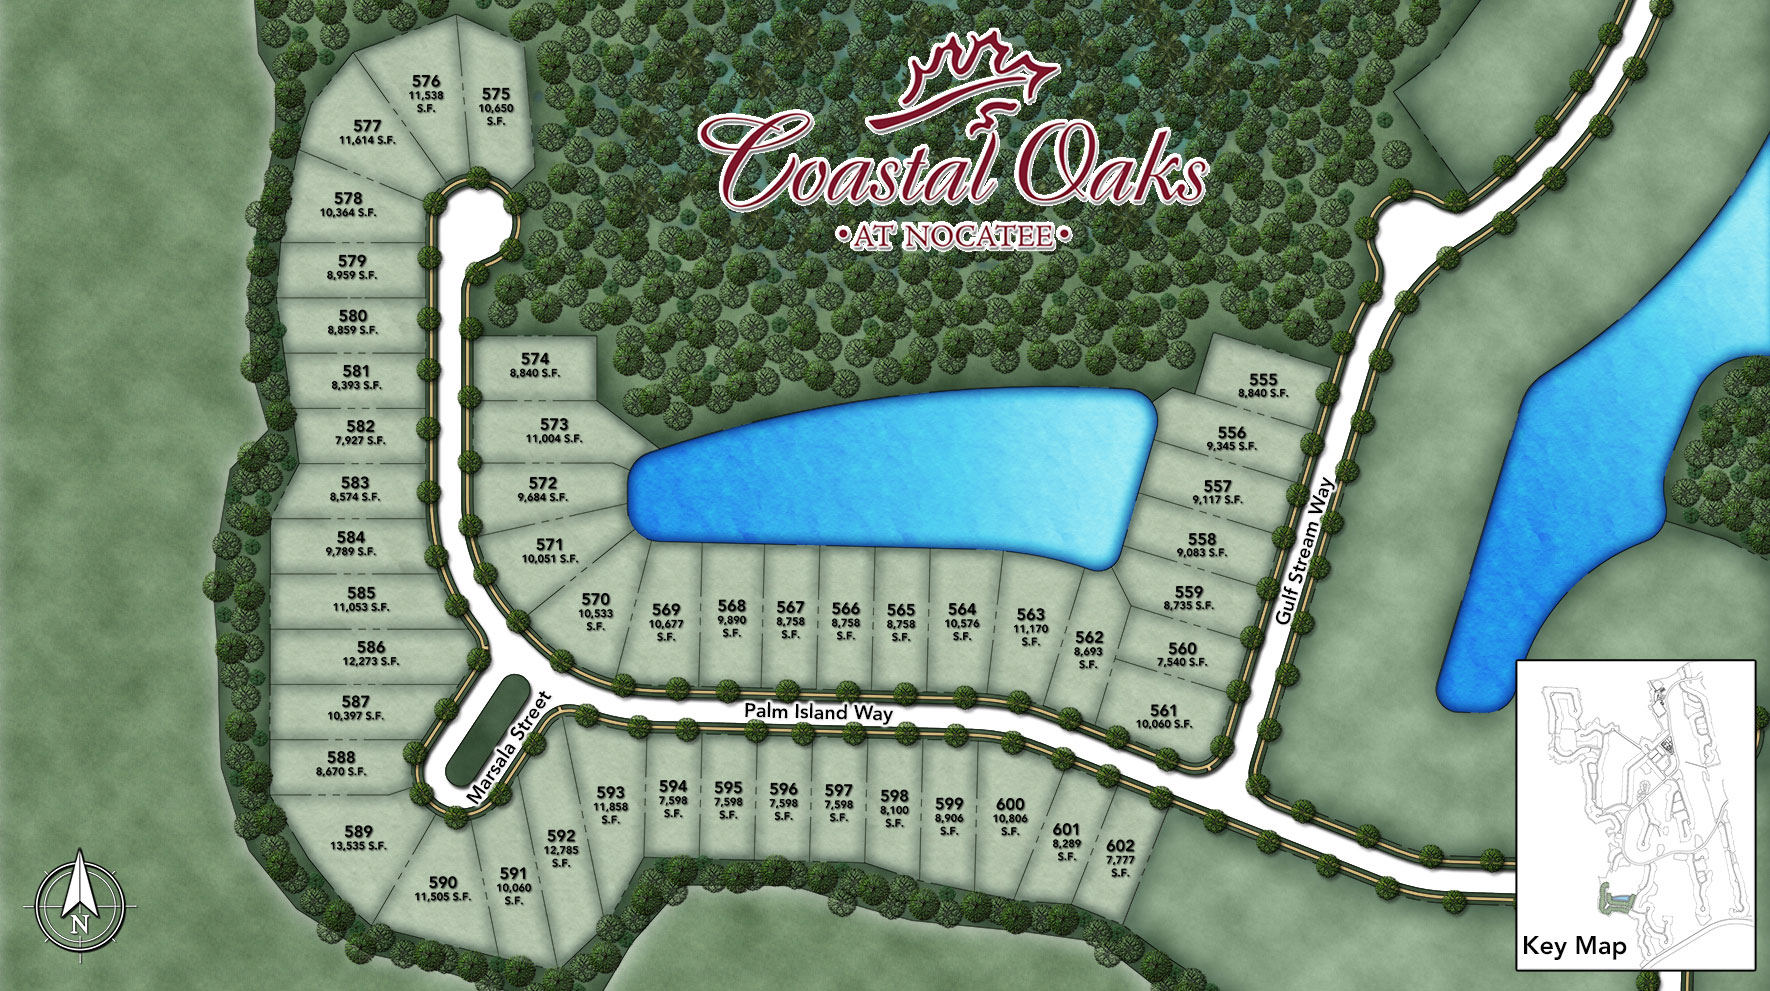 Coastal Oaks at Nocatee - Heritage Collection Palm Island II Site Plan